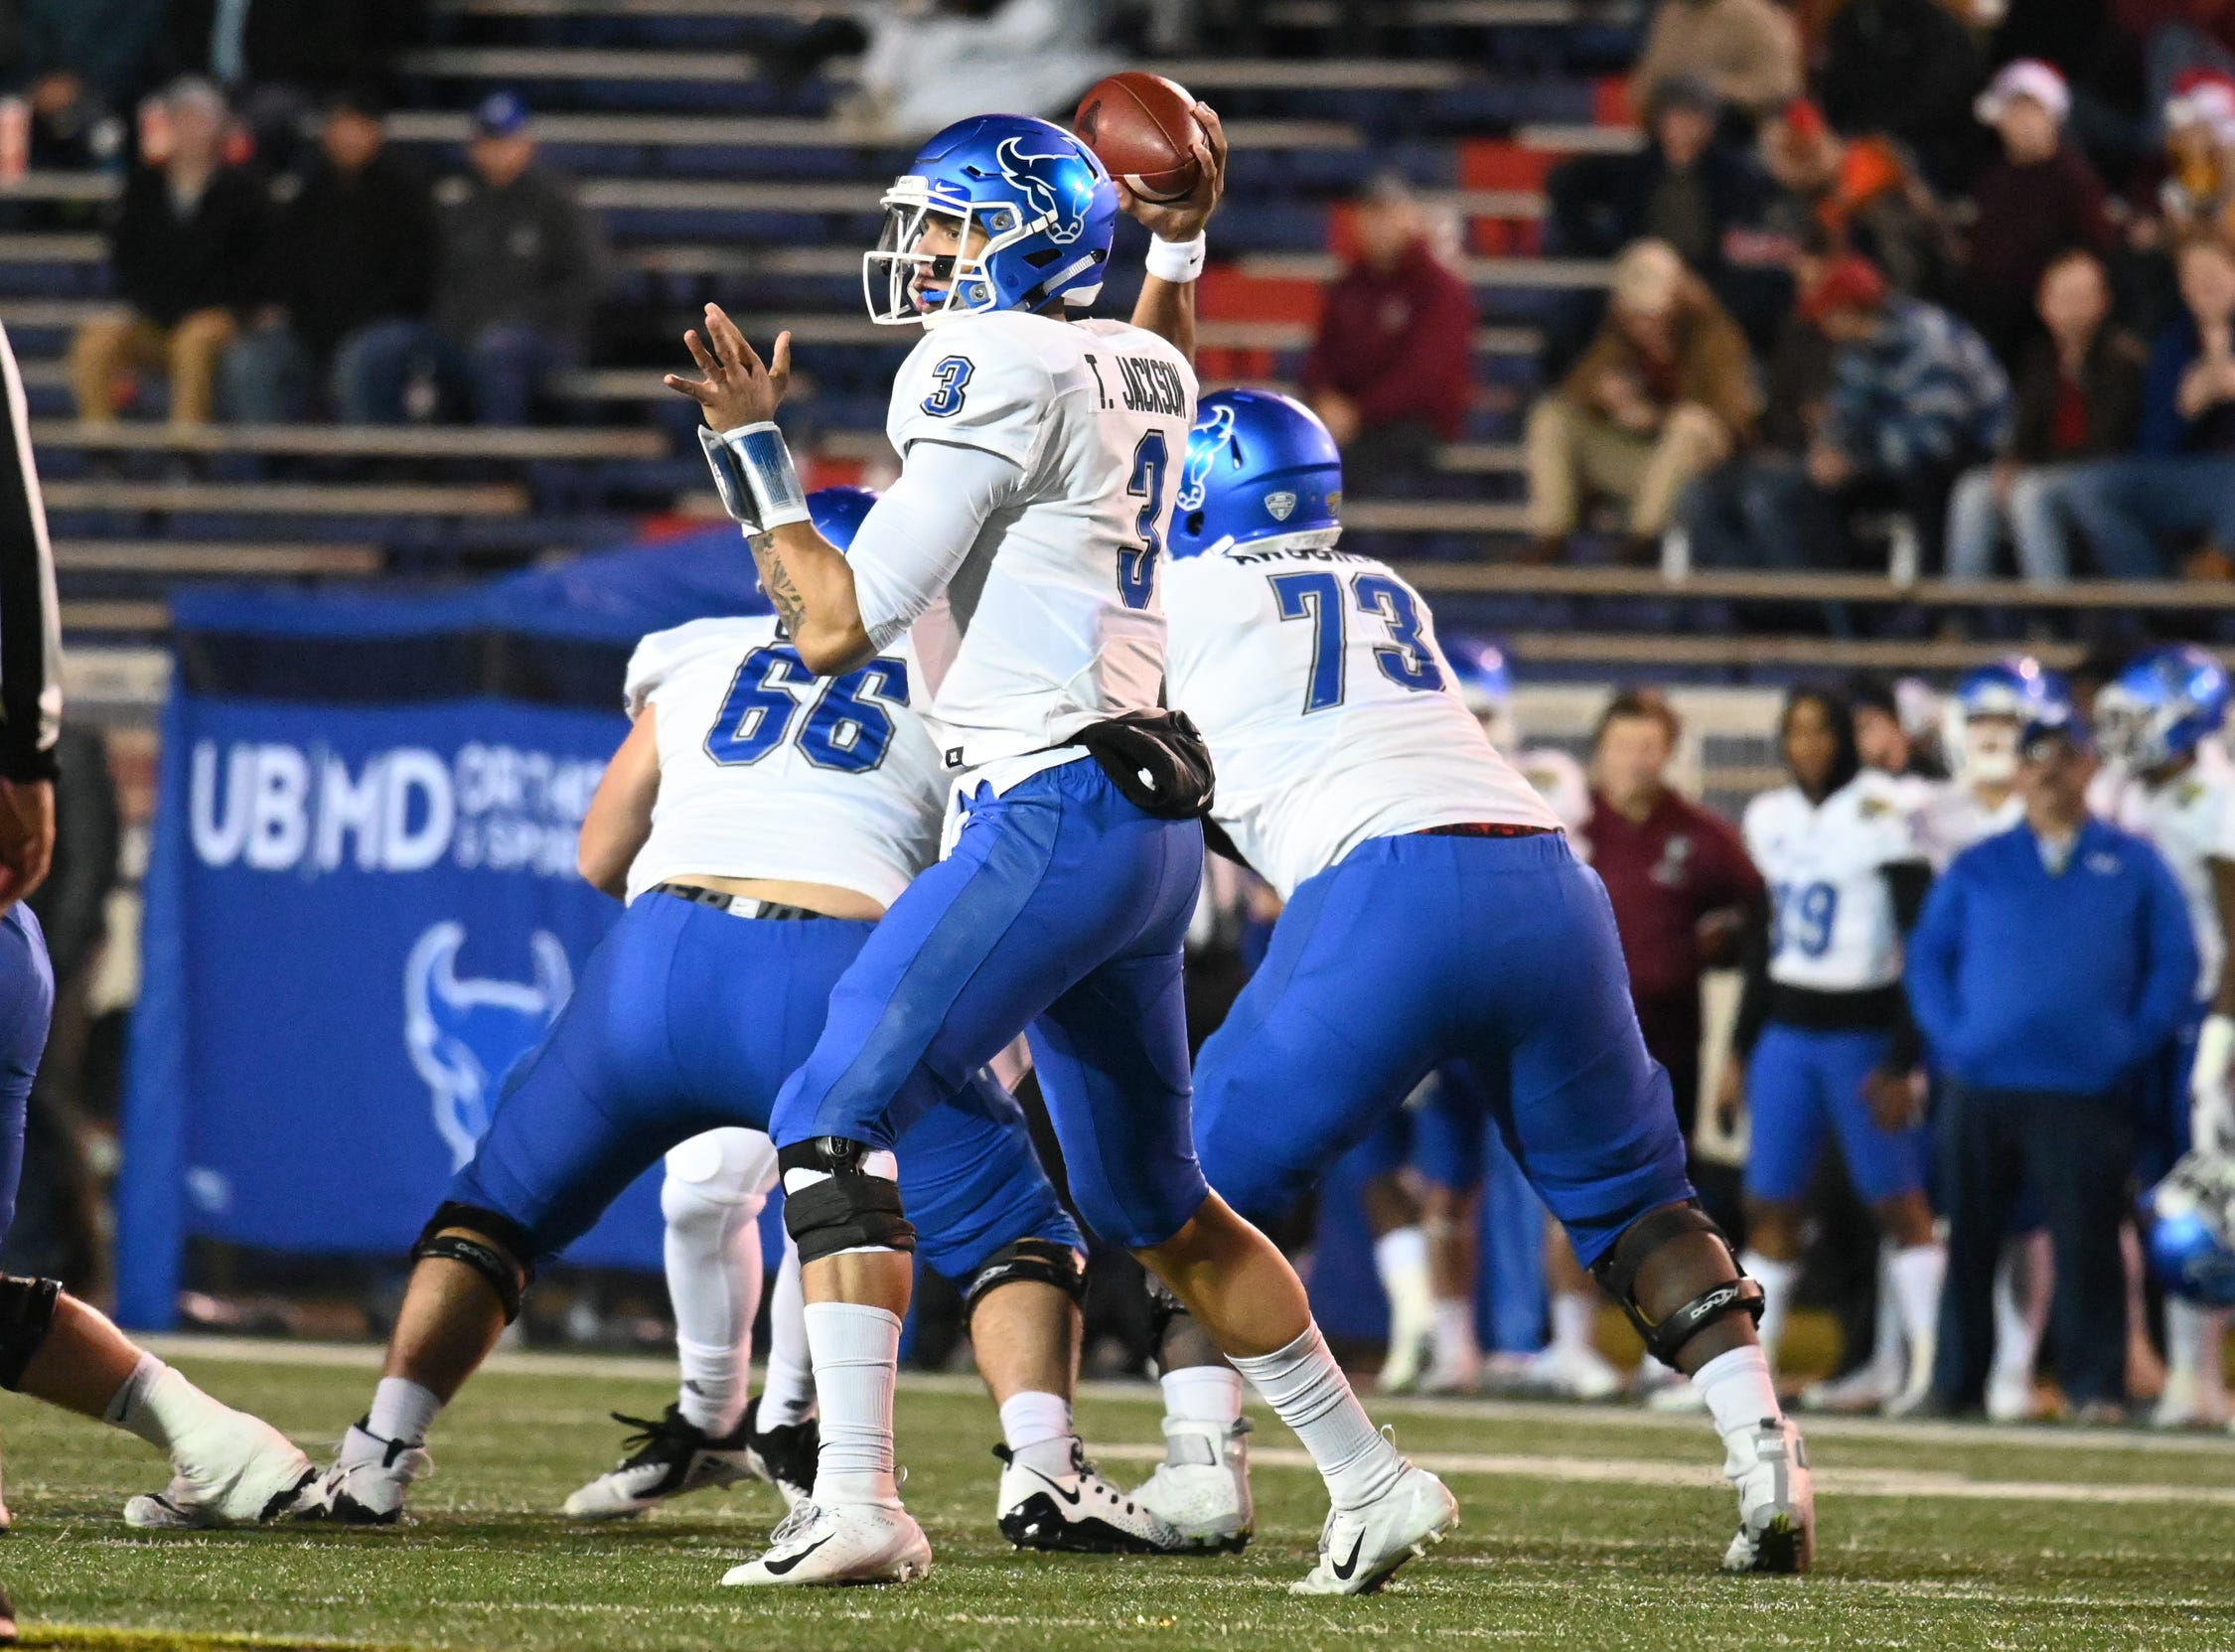 Buffalo Bulls quarterback Tyree Jackson (3) drops back to pass during the Dollar General Bowl held at Ladd-Peebles Stadium in Mobile on Saturday, Dec. 22, 2018.